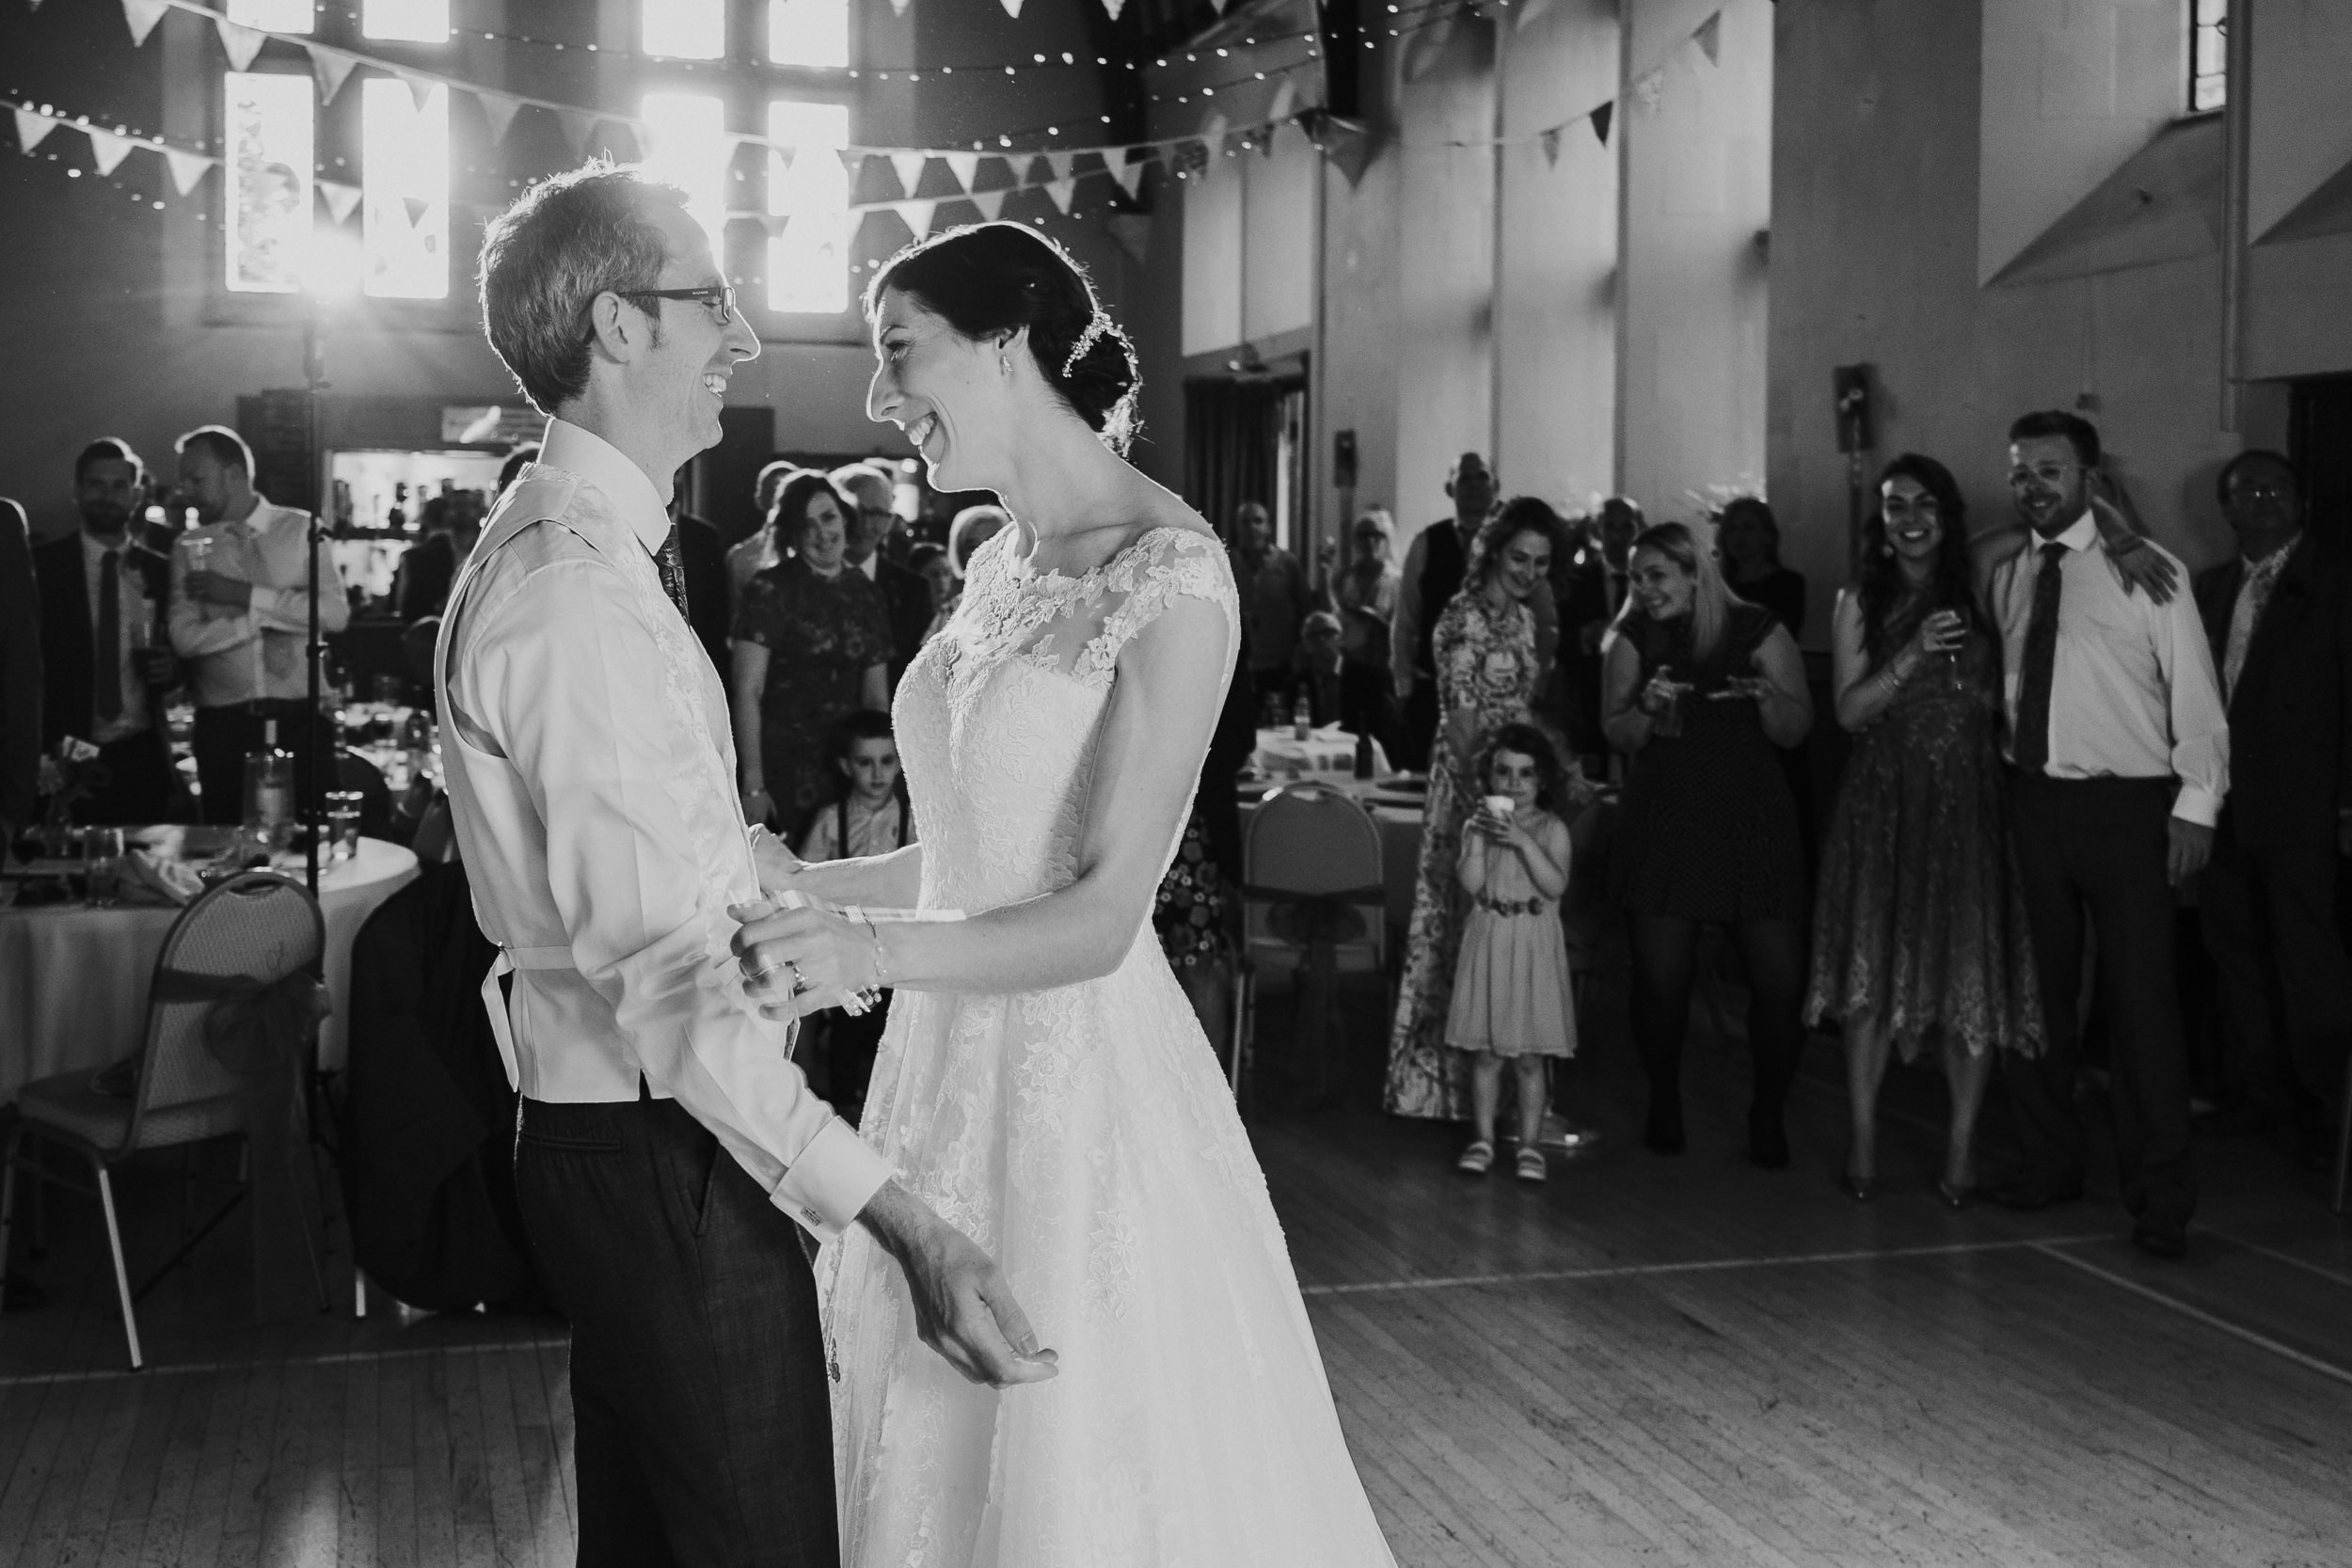 Westbury on Trym Wedding - The Bride and Groom share their first dance in the village hall